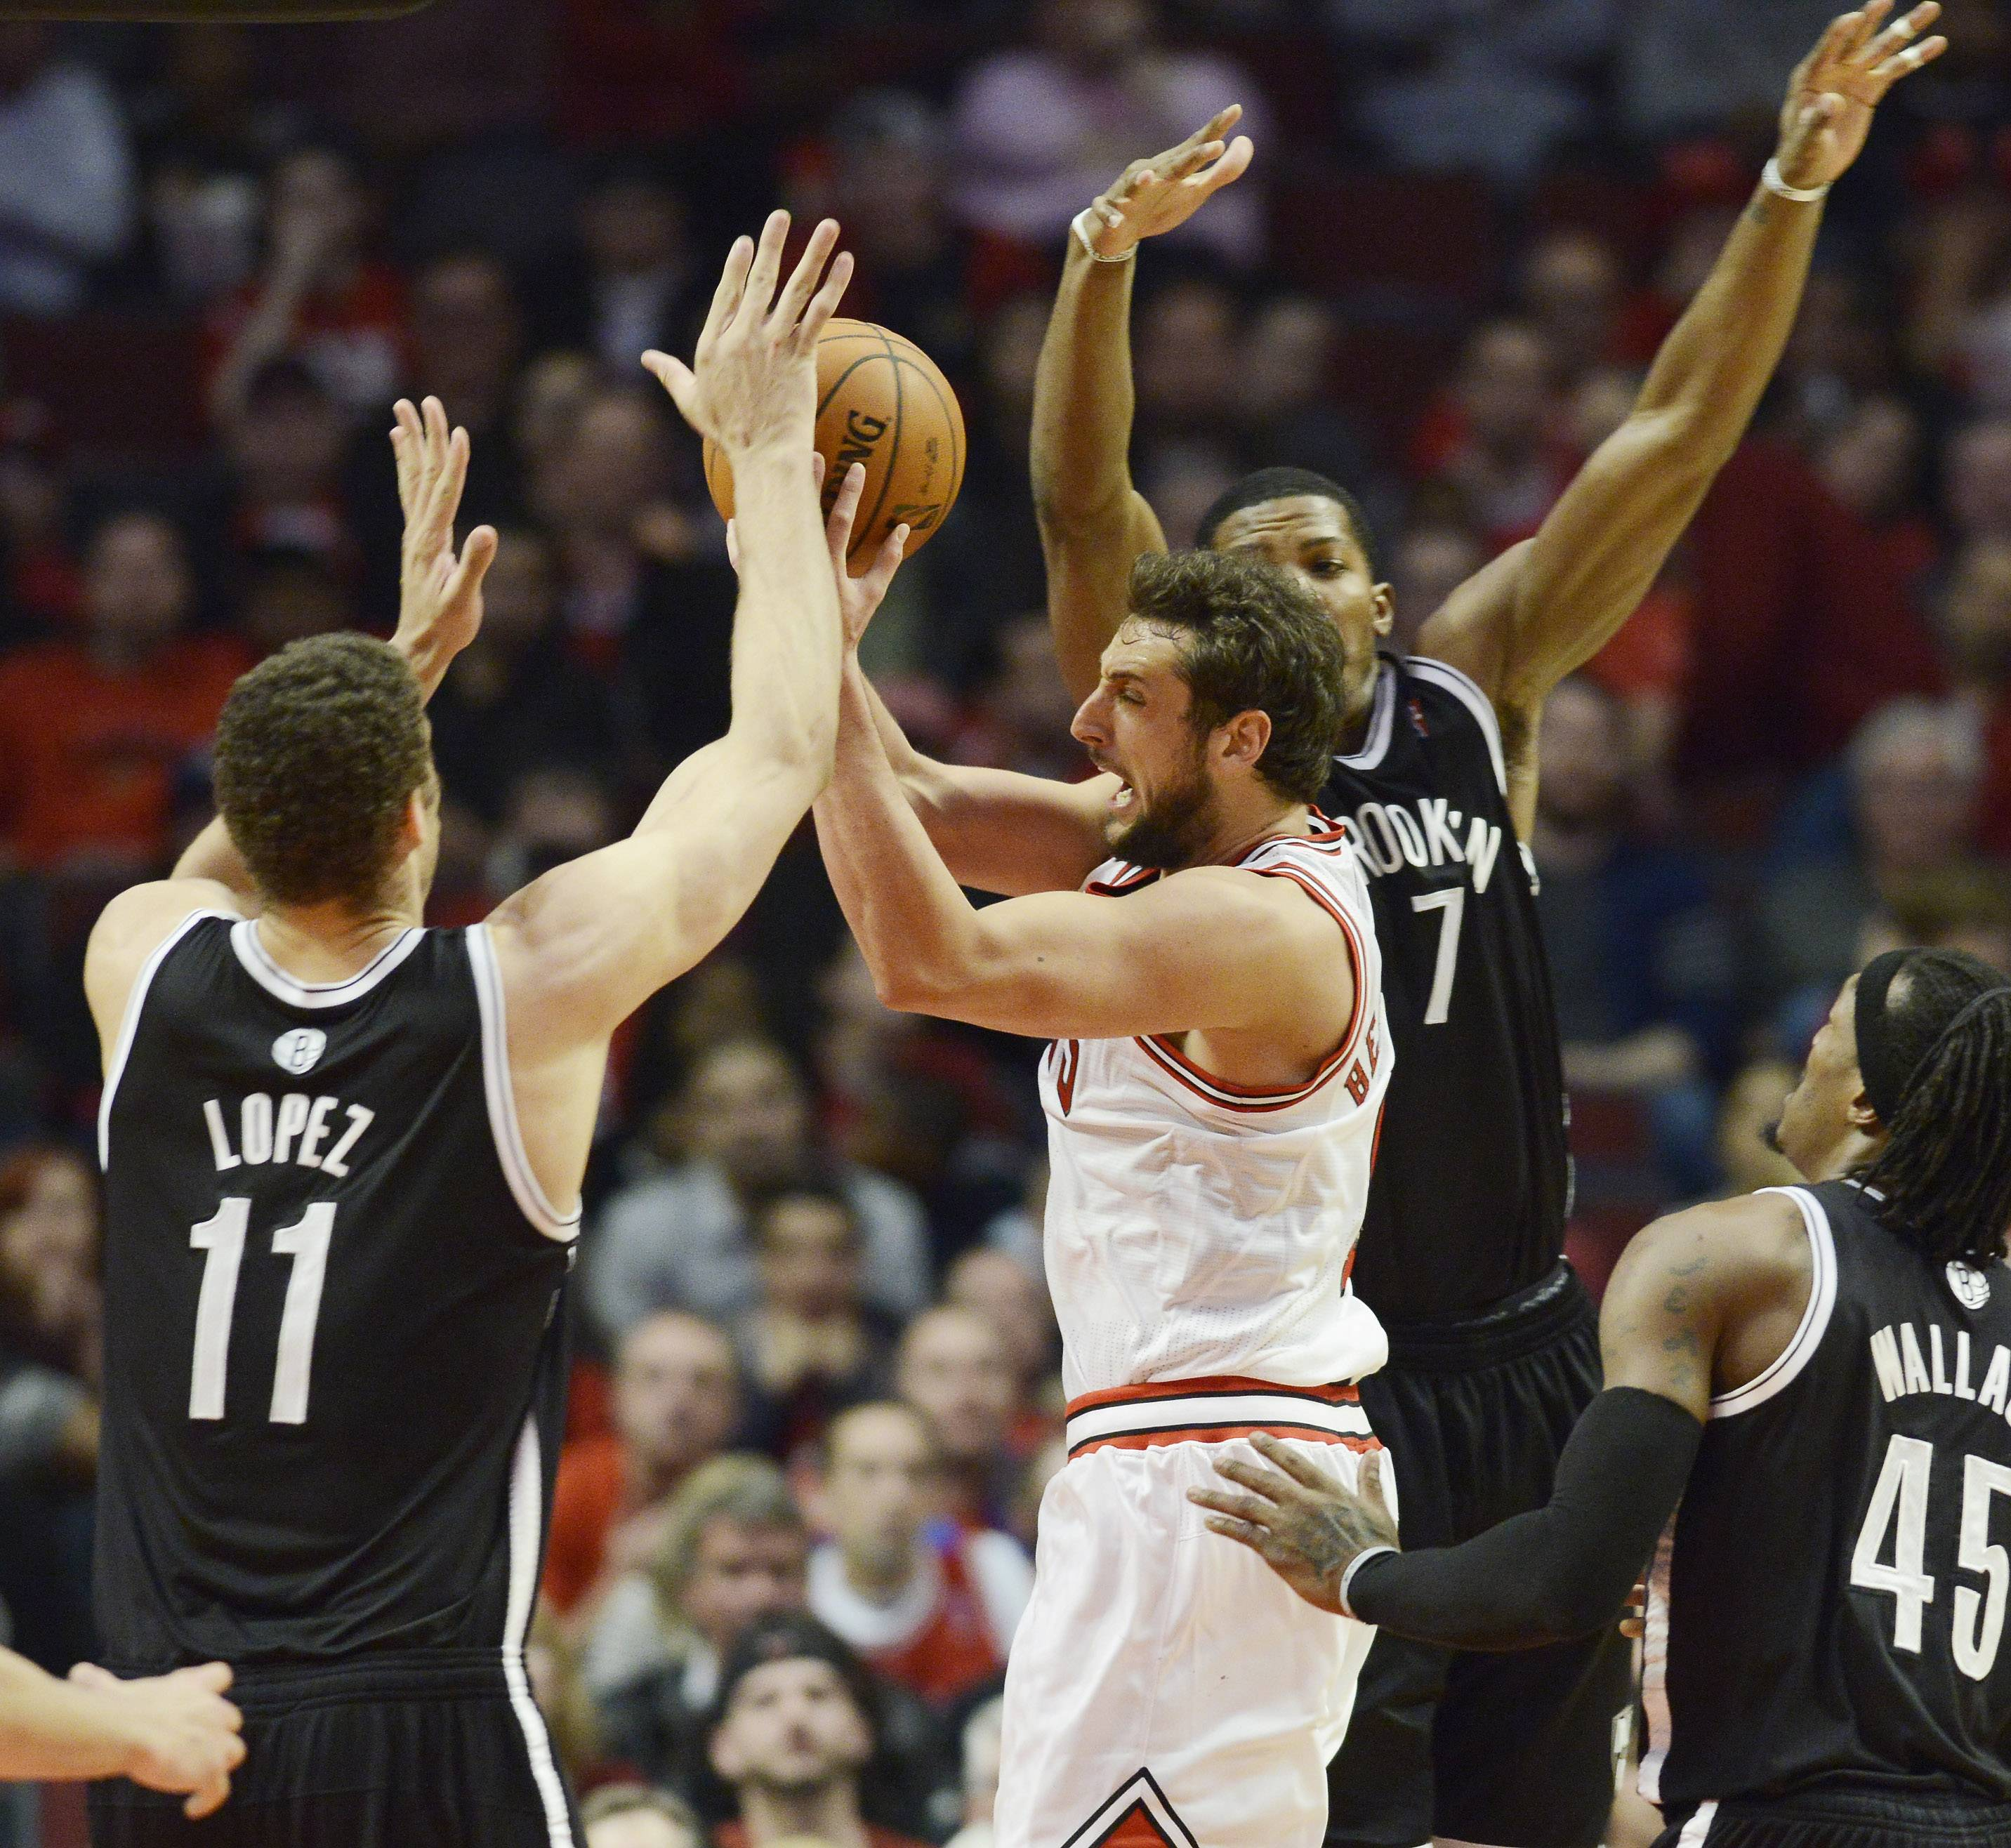 Marco Belinelli of the Chicago Bulls drives hard to the basket against Brook Lopez, left, and Deron Williams of the Brooklyn Nets in Game 6 of the first round playoff game at the United Center in Chicago, Thursday, May 2, 2013.